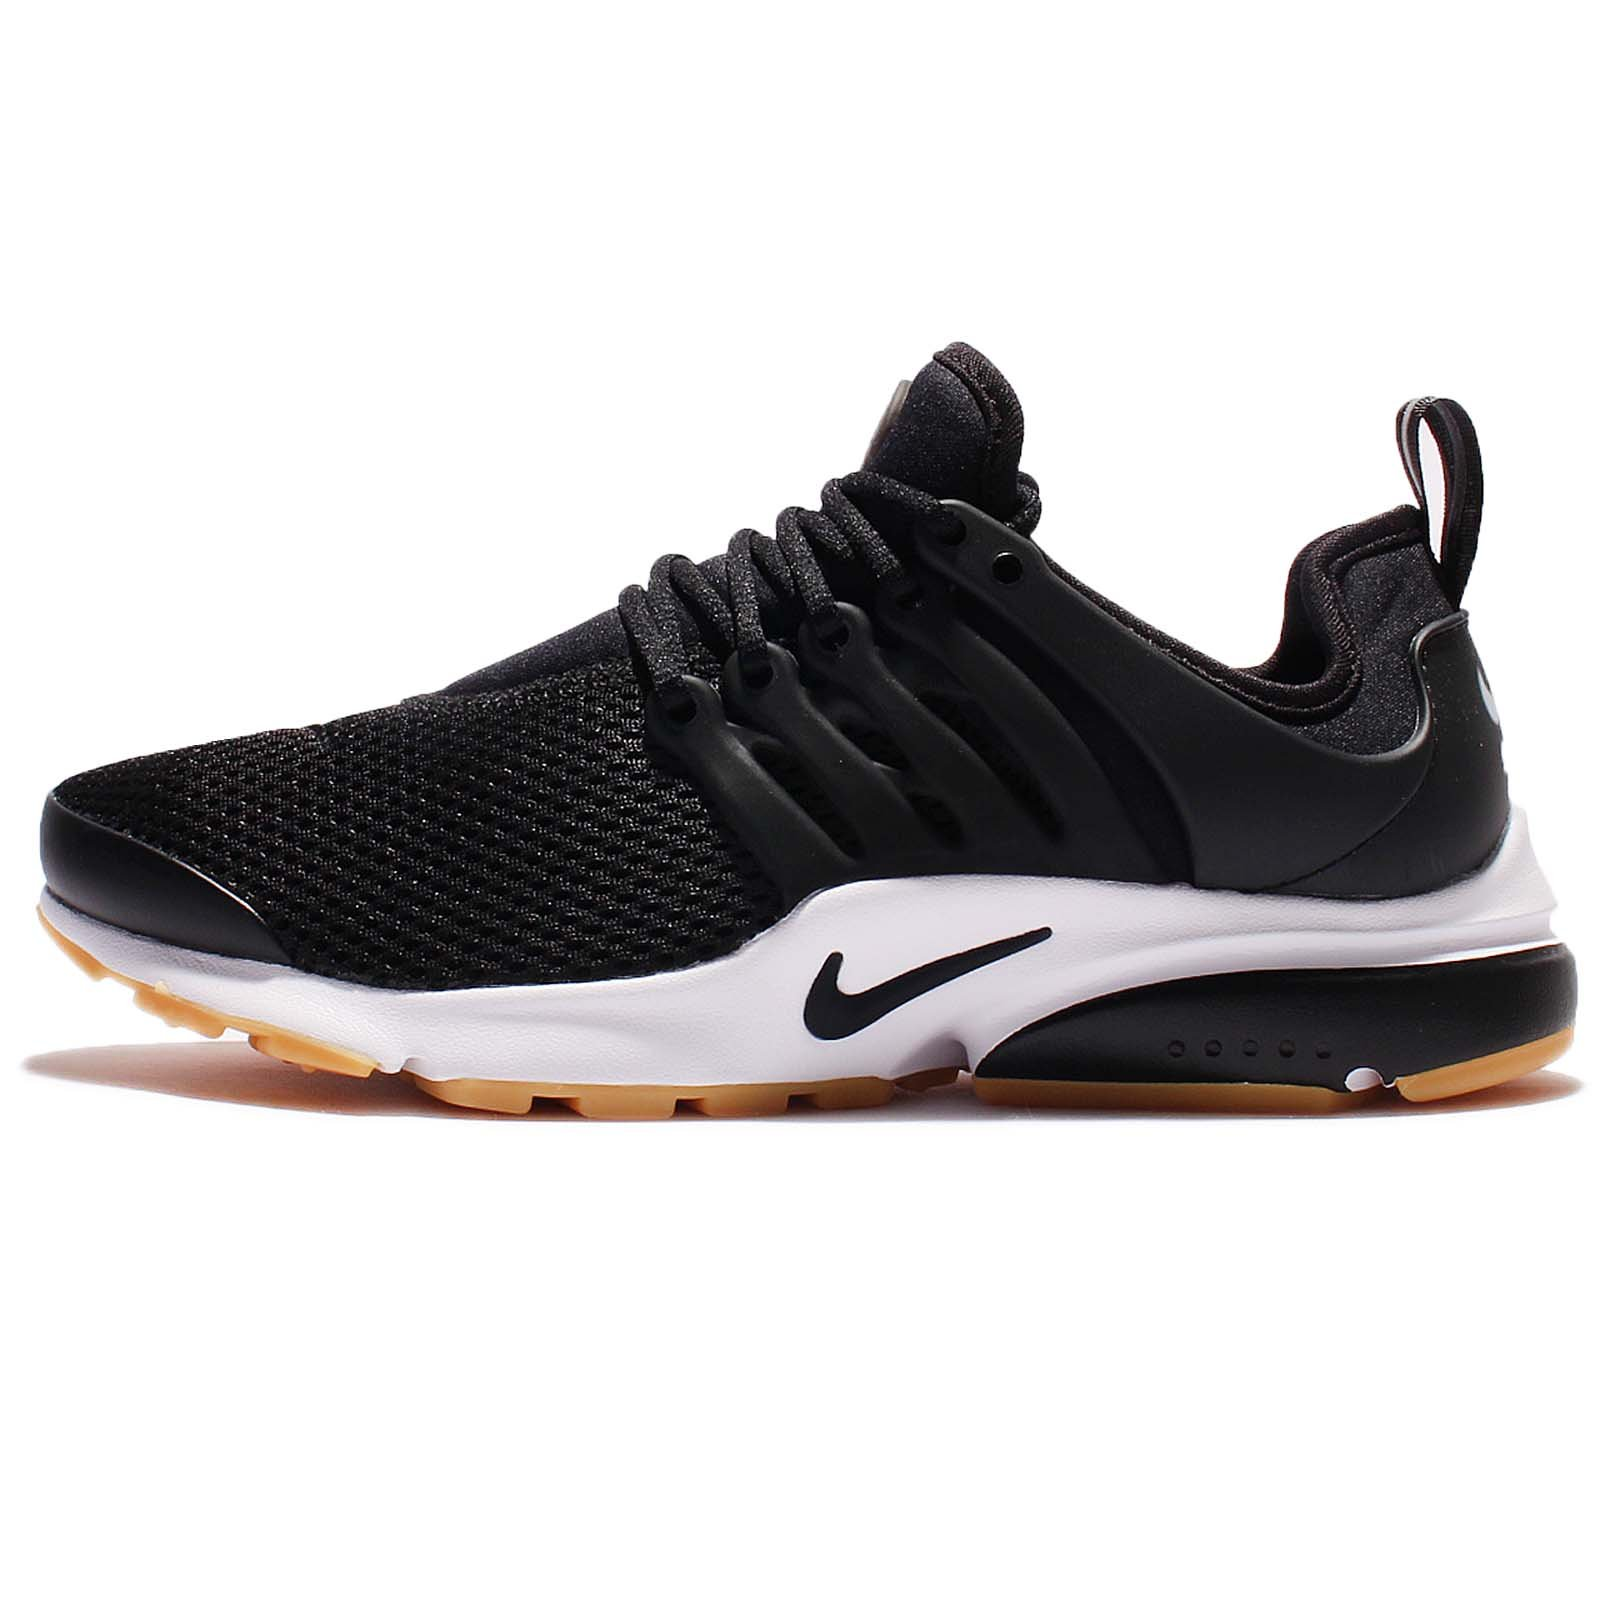 Nike Womens Air Presto Black/White/Gum Yellow/Black Running Shoe Sz, 5 D(M) US